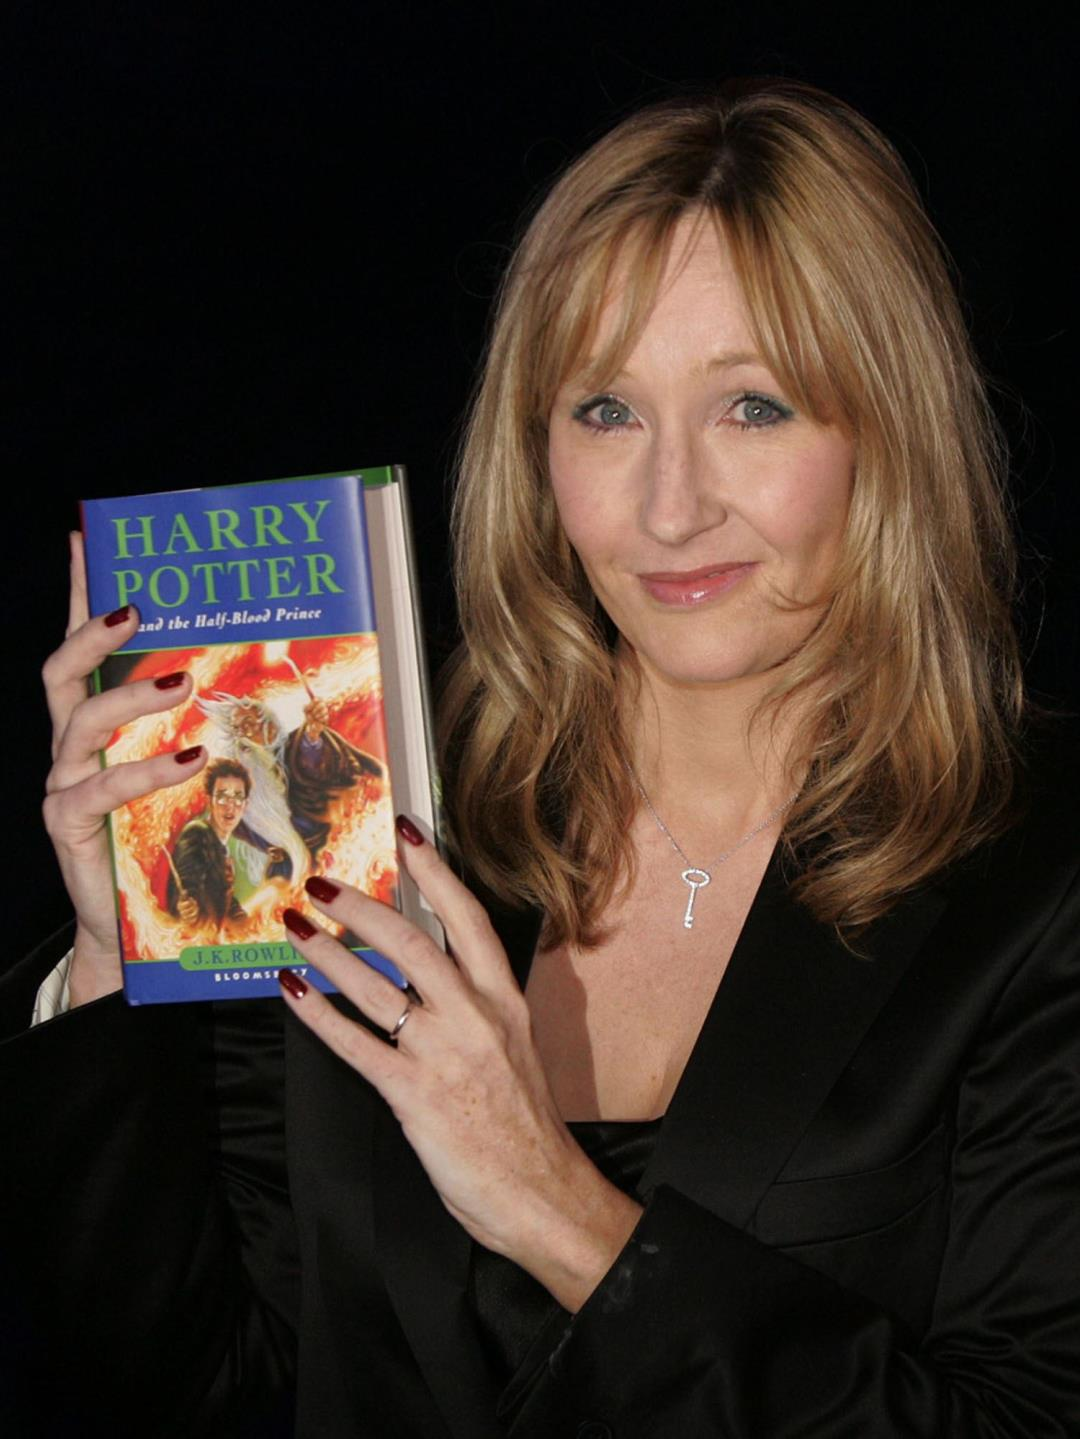 Harry Potter Fan Sites Are Backing Away From JK Rowling thumbnail